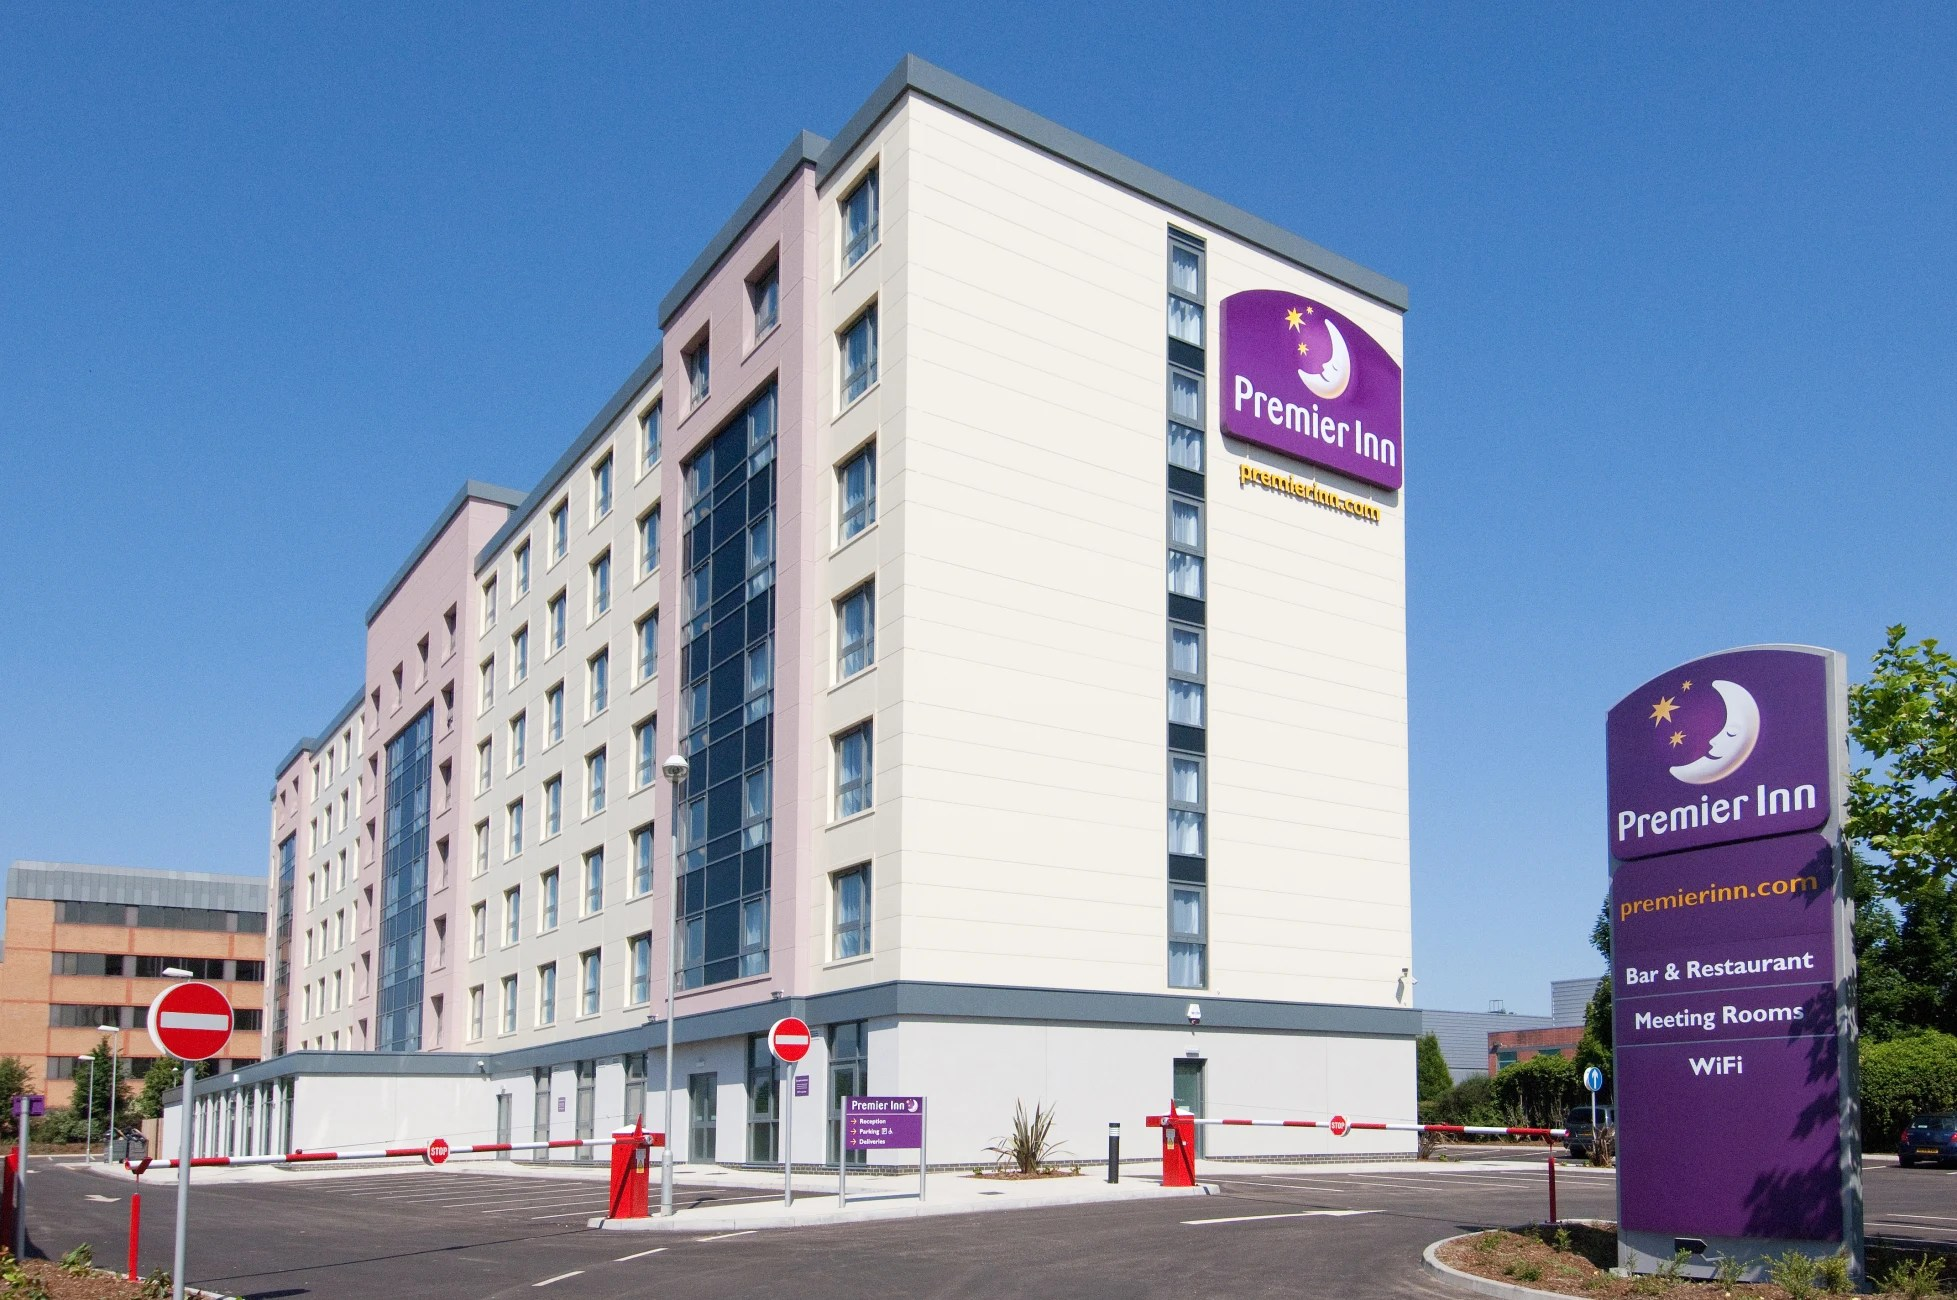 Hotel Premier Inn London Gatwick Airport Manor Royal Hotel